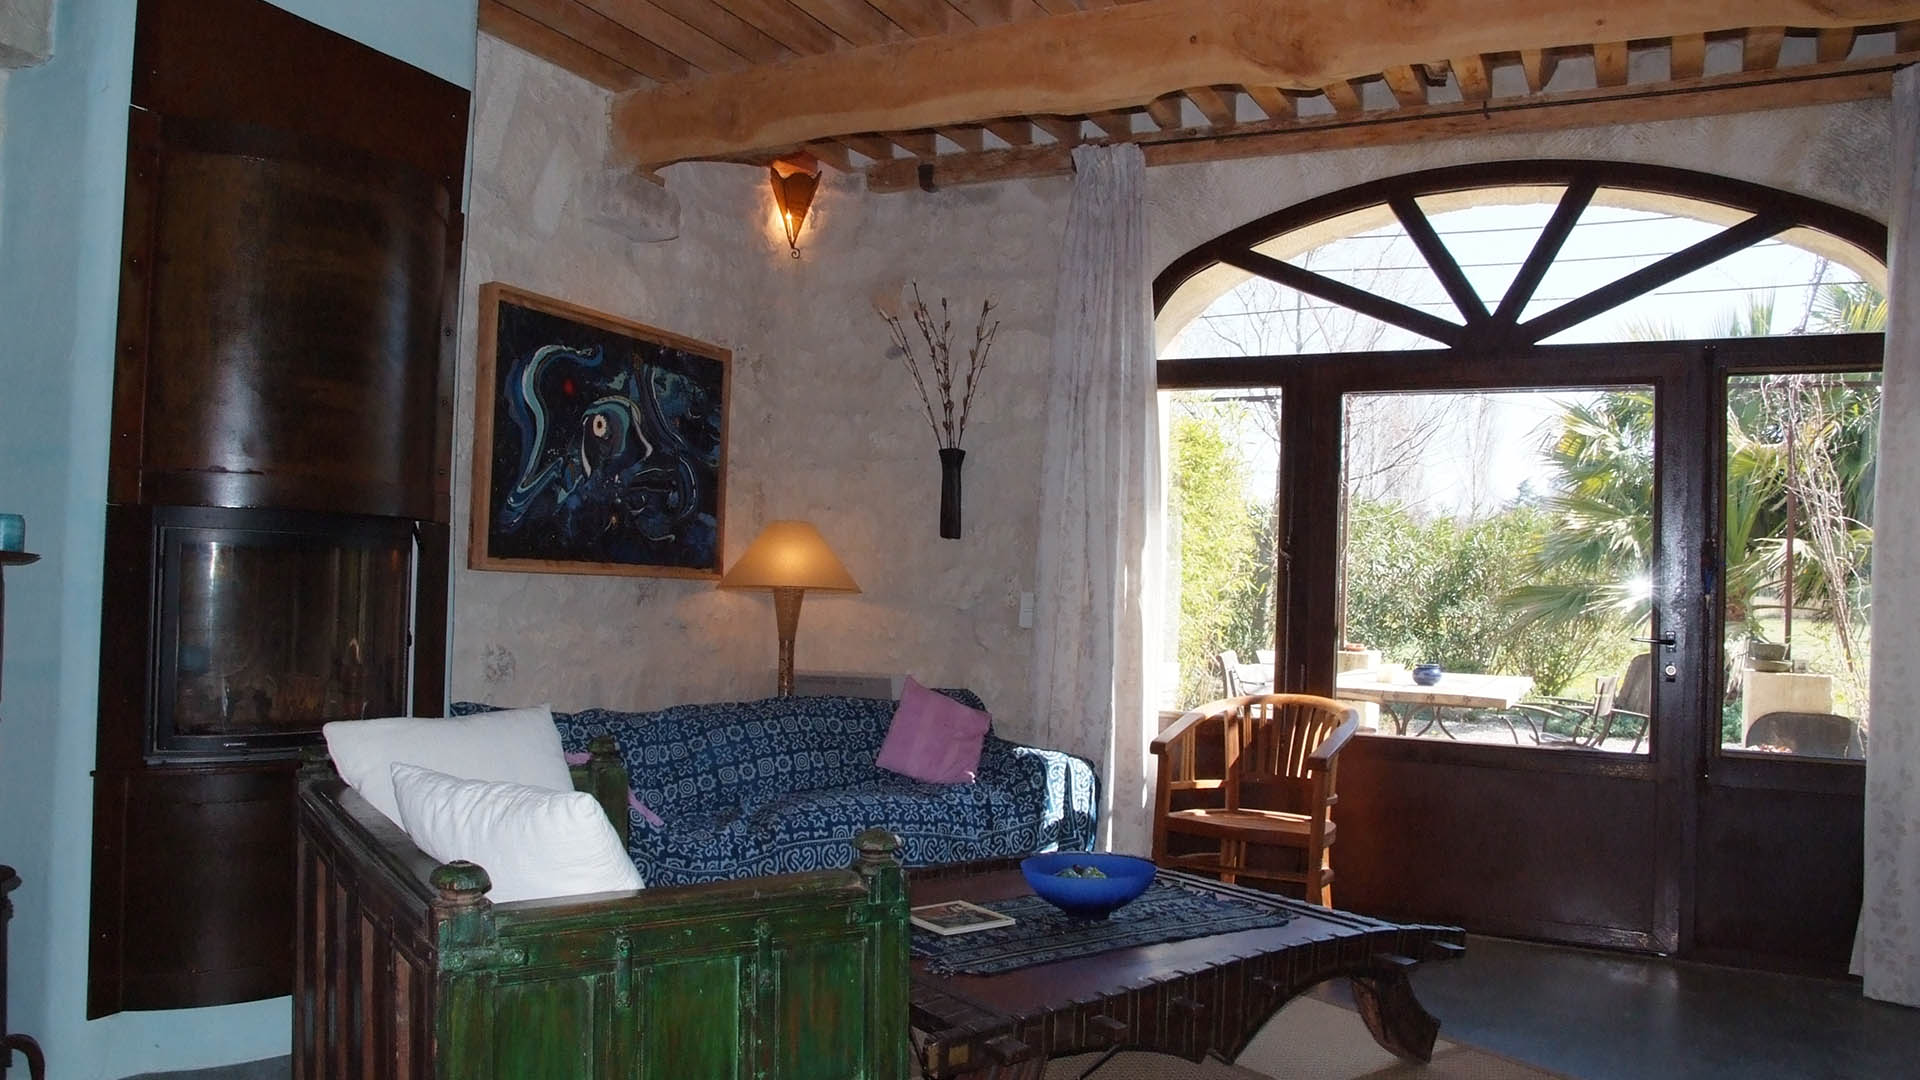 Provence Decoration Cottage Bed And Breakfast In Saint Rémy De Provence France Blue